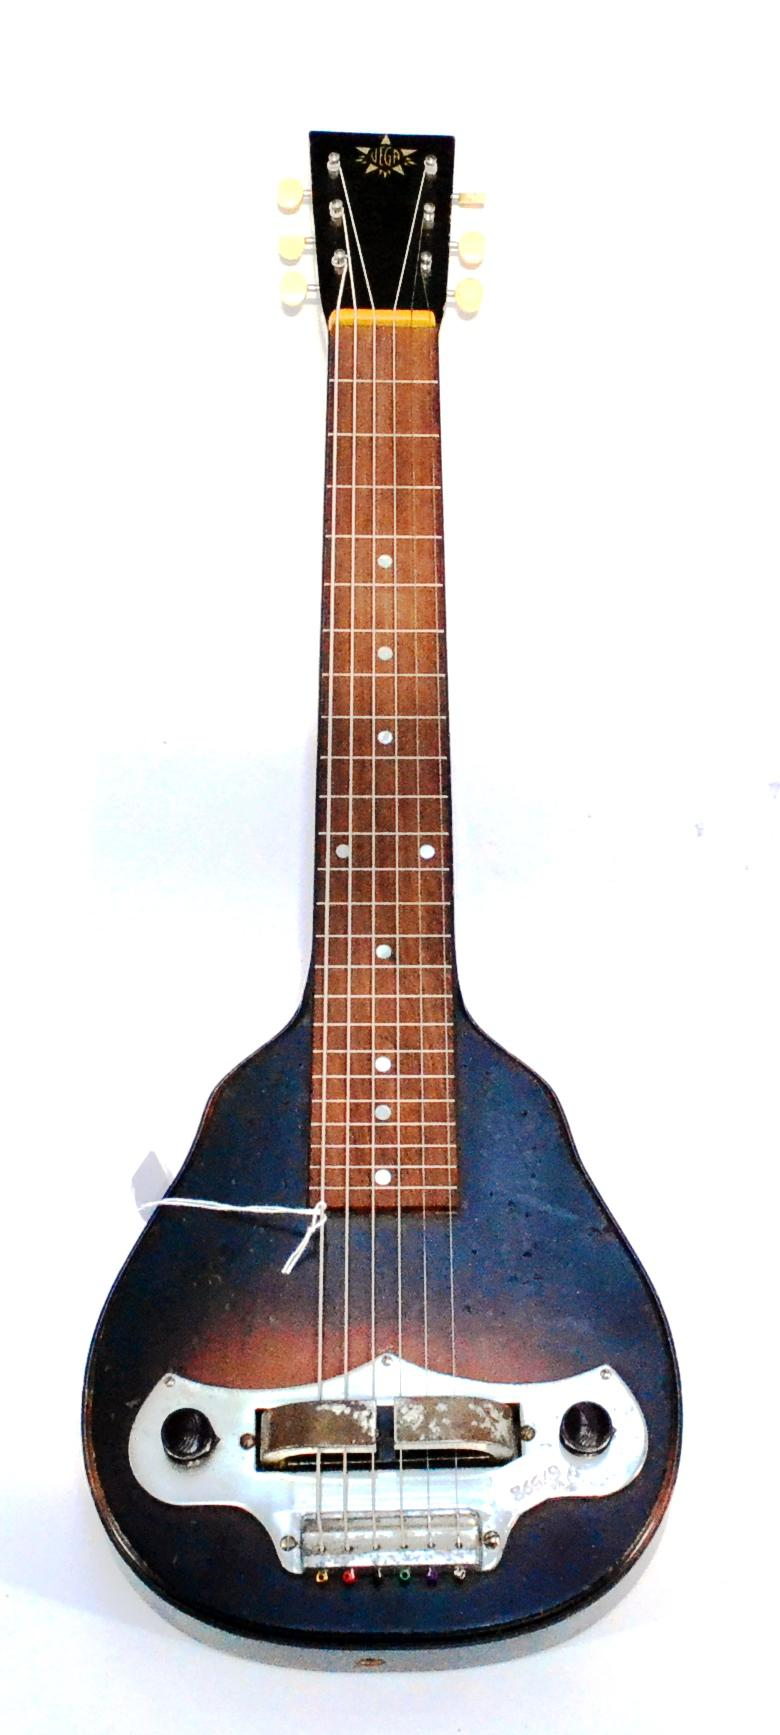 A 1930s Vega Lapsteel Guitar, one-piece construction with